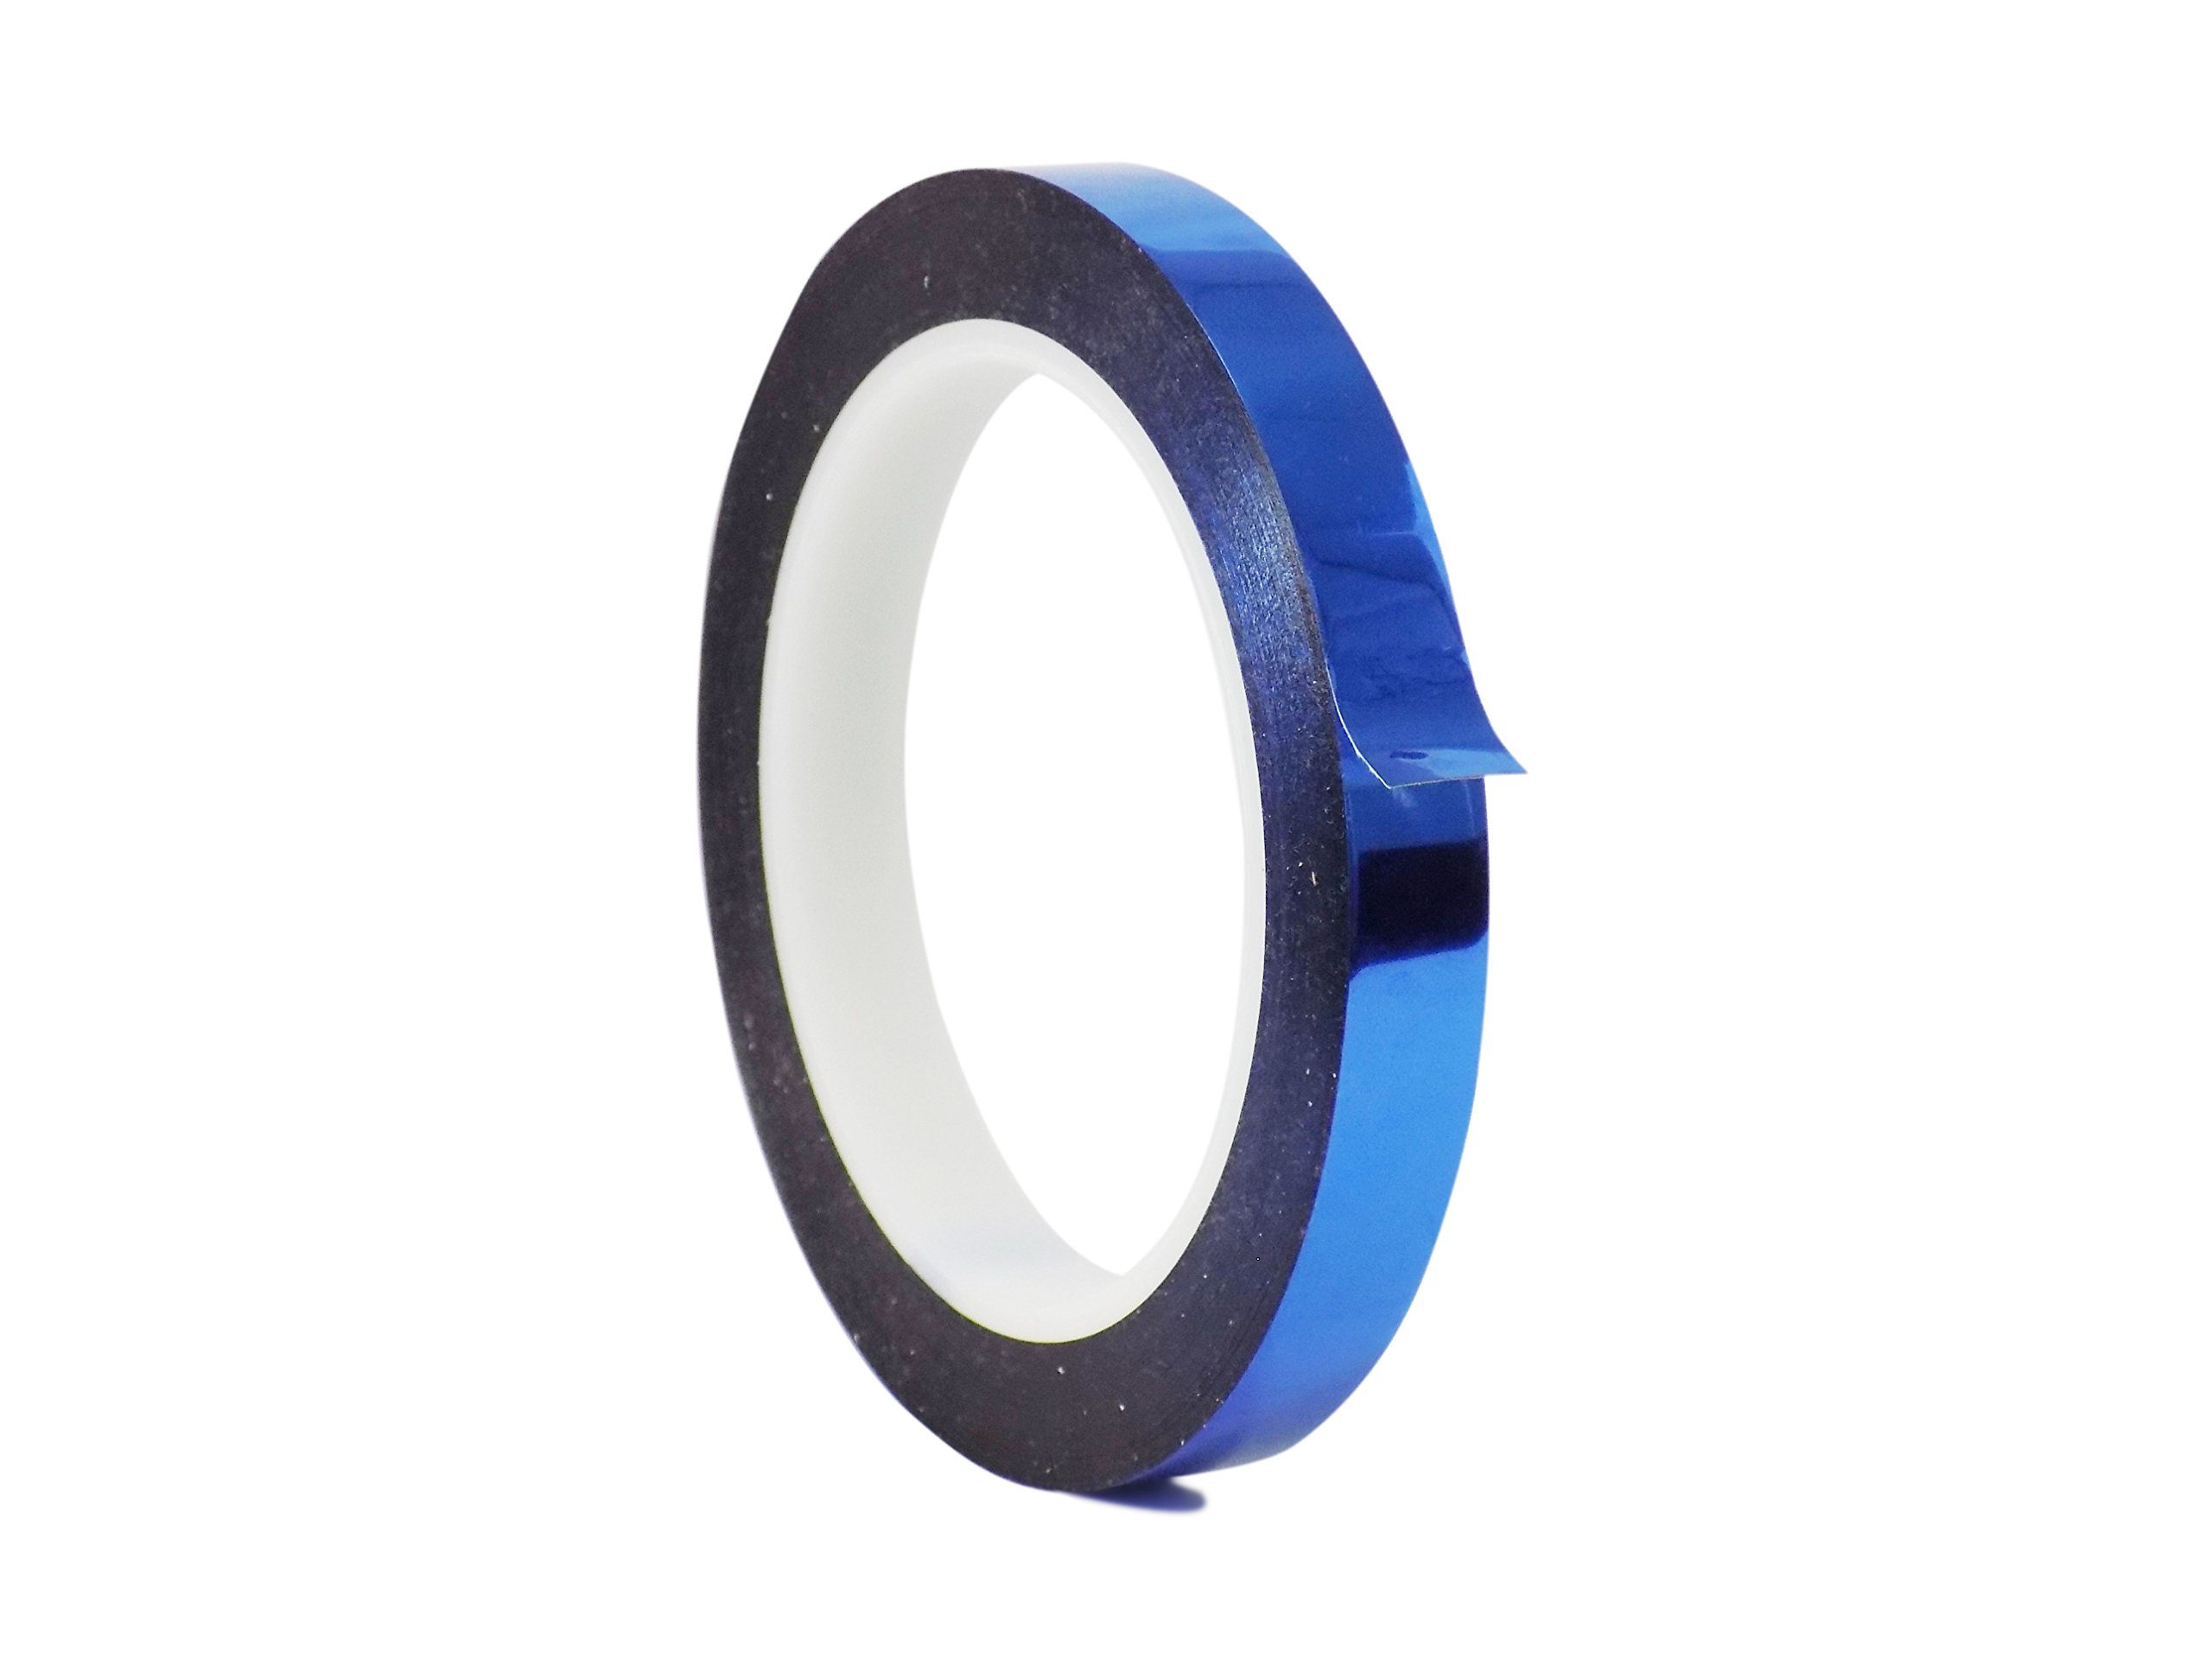 WOD MMYP-1 Blue Metalized Polyester Mylar Film Tape with Acrylic Adhesive (Available in Multiple Colors & Sizes): 1/2 in. x 72 yds. Excellent Chemical and Thermal Stability.